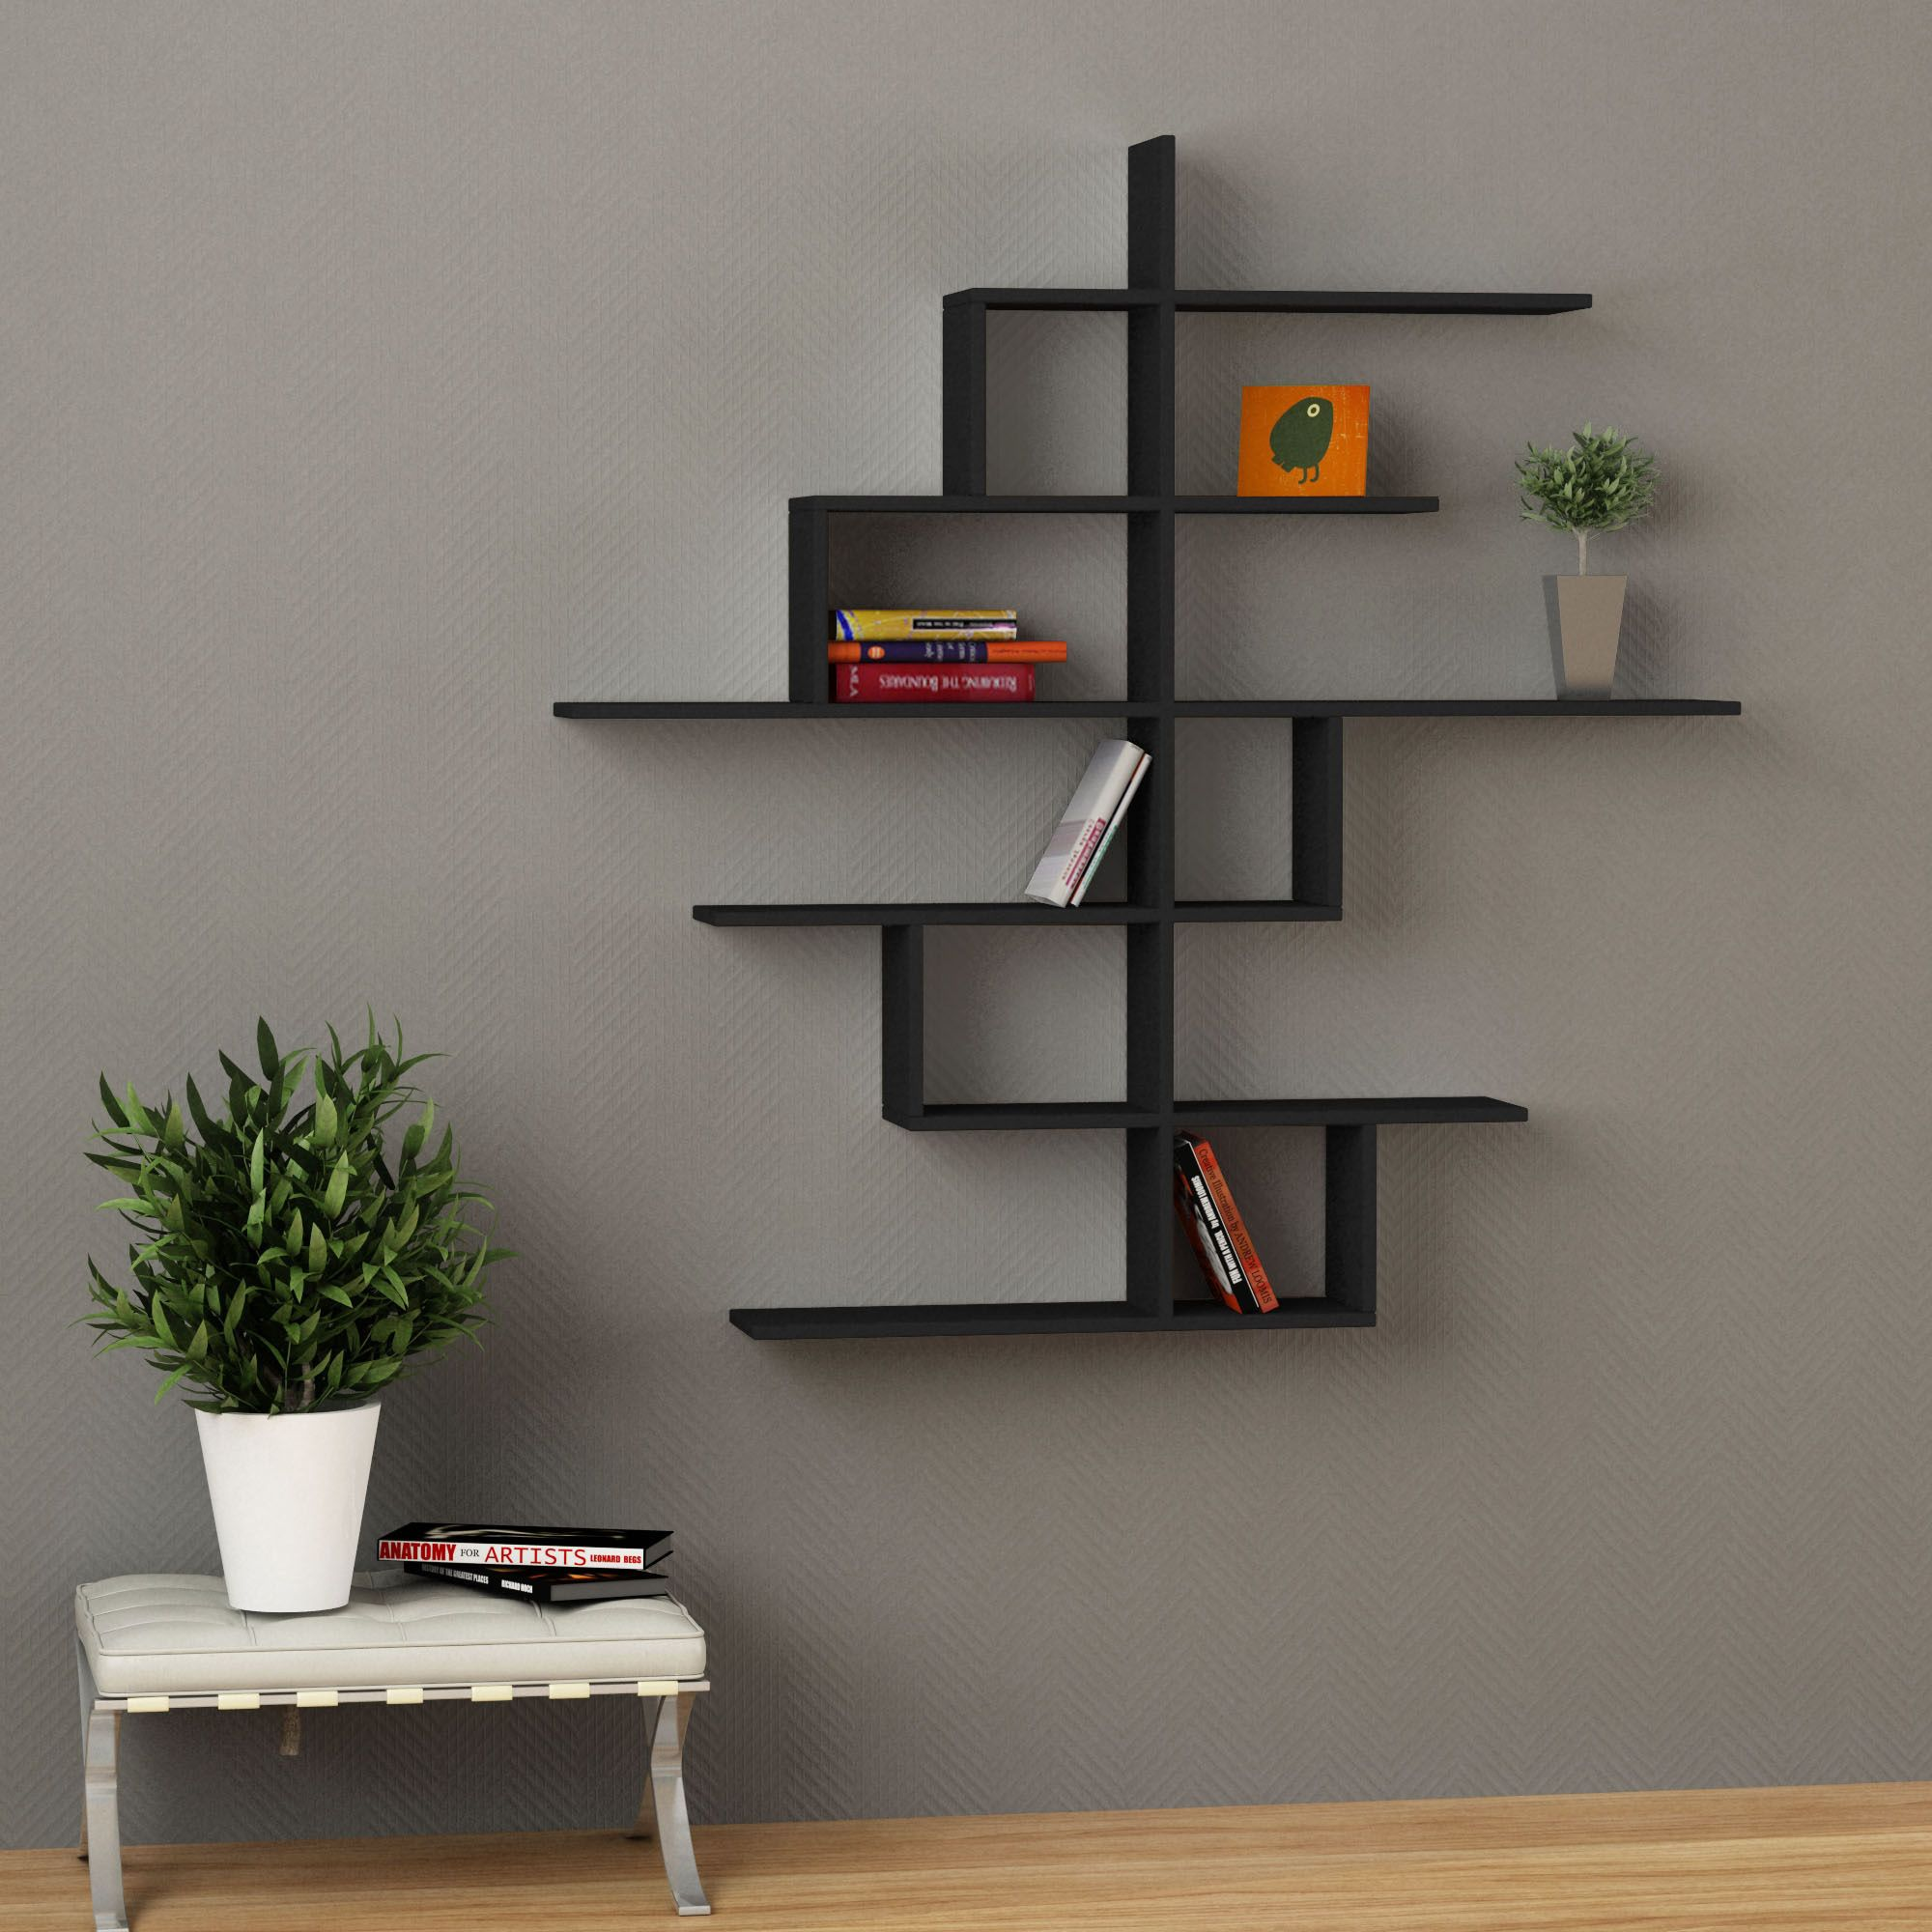 Wall shelve nice ideas shelves wall shelves y bookshelves - Mensole a muro ikea ...